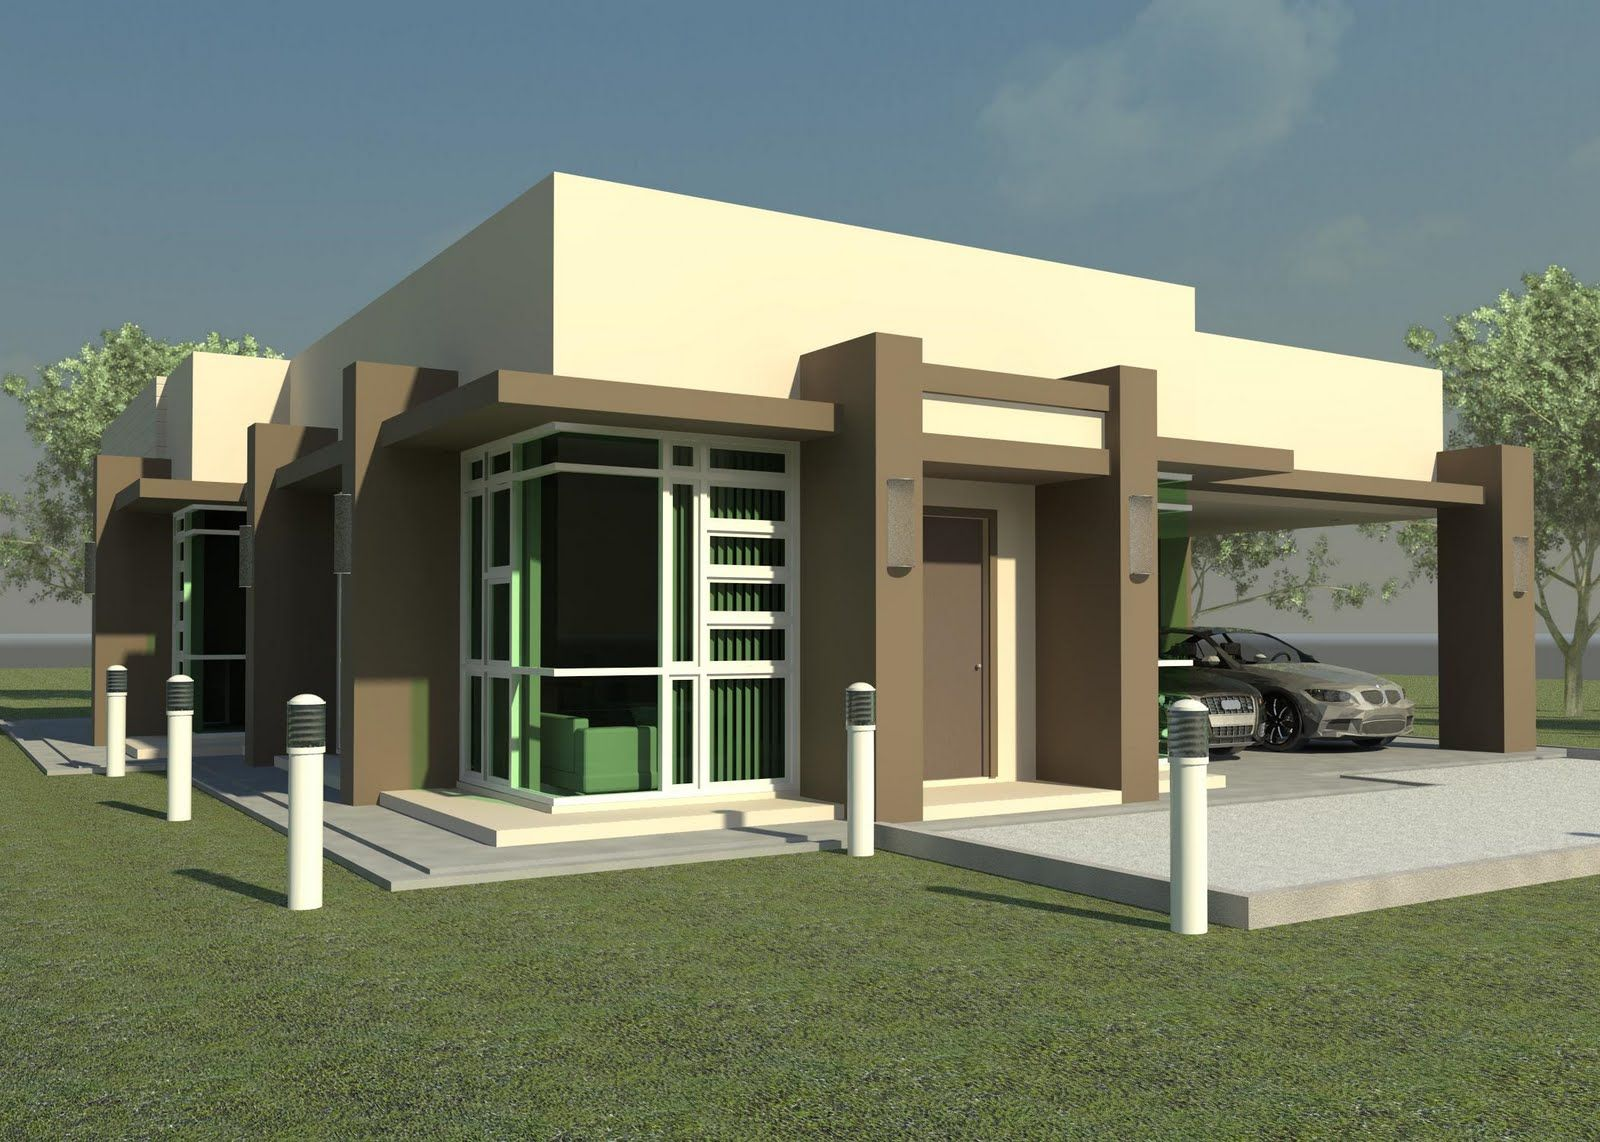 Old 14 tiny house modern on new home designs latest modern small homes designs exterior